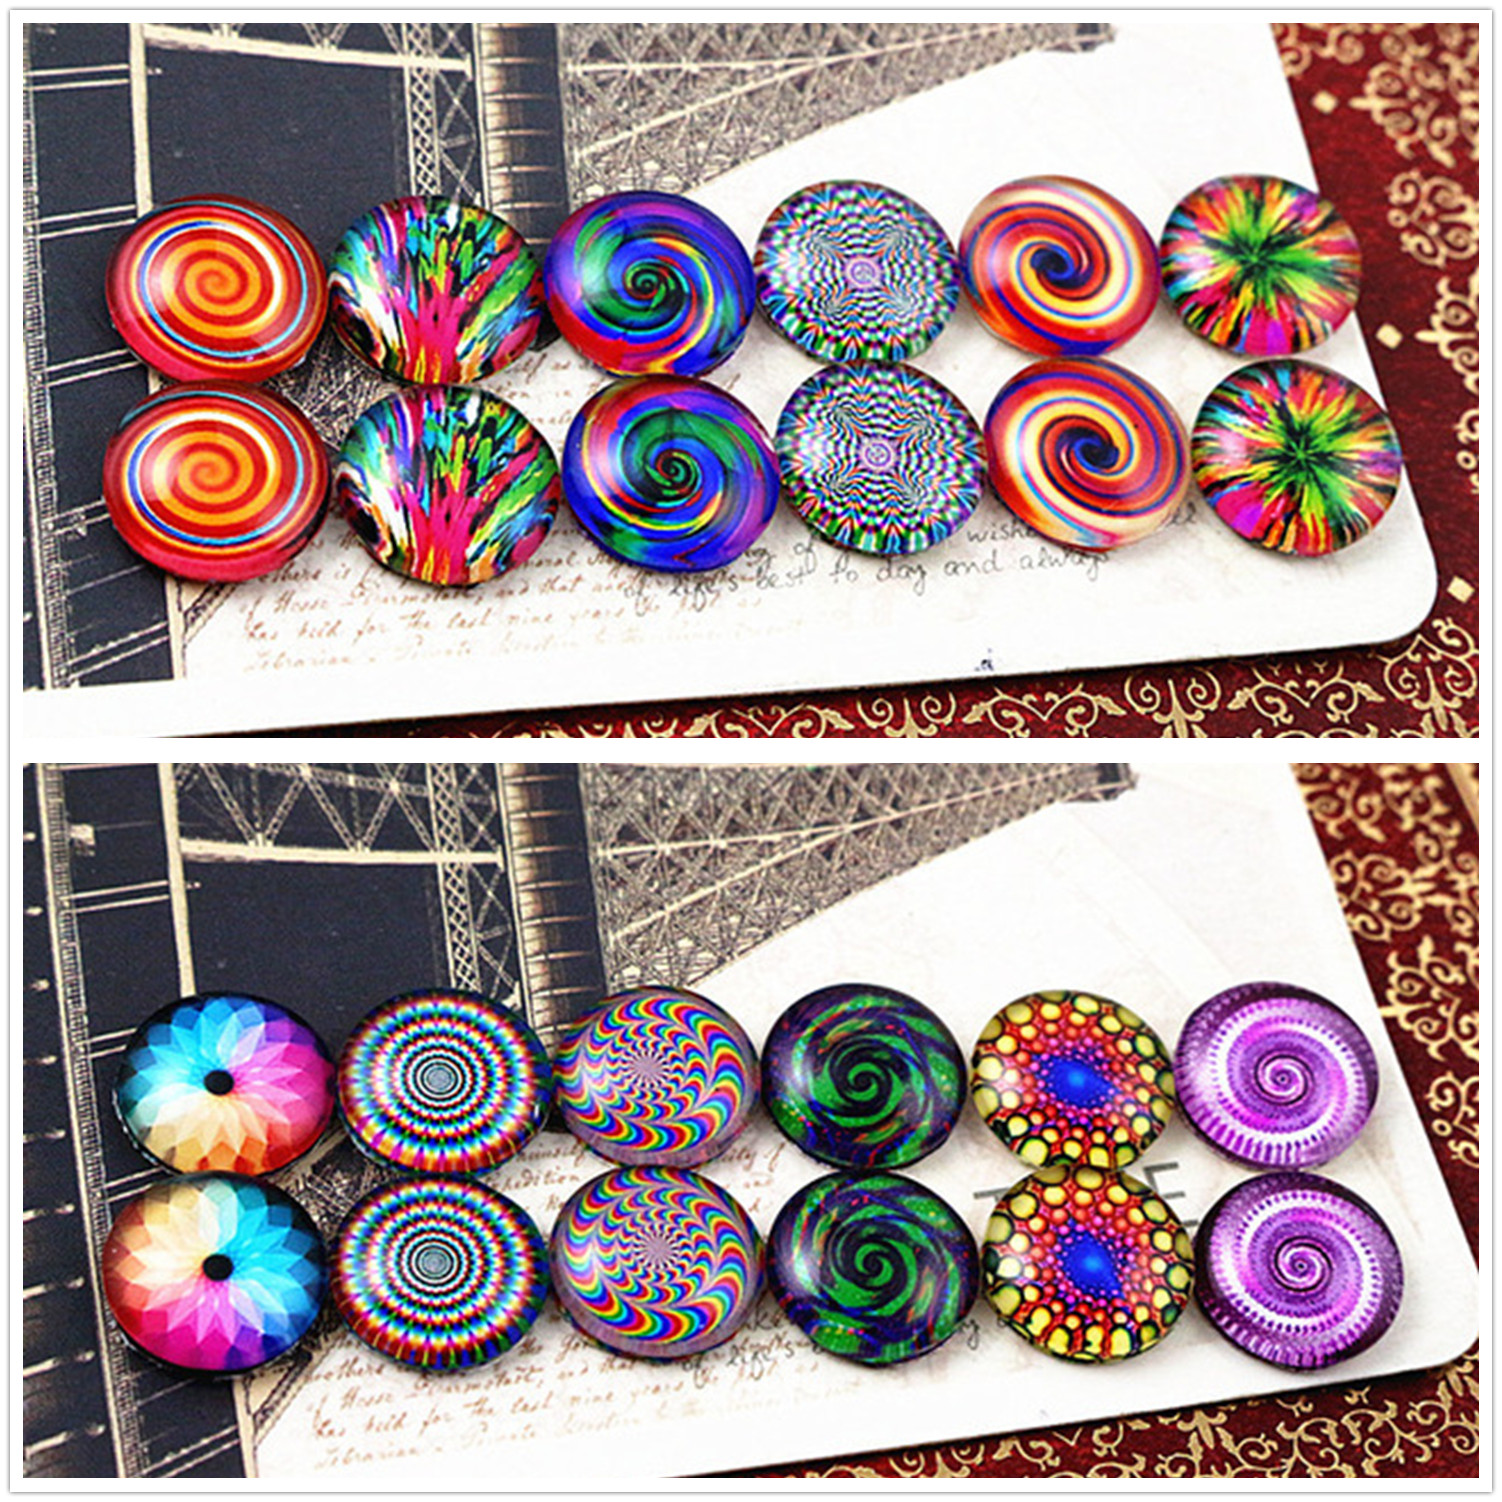 12pcs/lot (One Set) Two Style 12mm Fashion bright color Handmade Glass Cabochons Pattern Domed Jewelry Accessories Supplies12pcs/lot (One Set) Two Style 12mm Fashion bright color Handmade Glass Cabochons Pattern Domed Jewelry Accessories Supplies